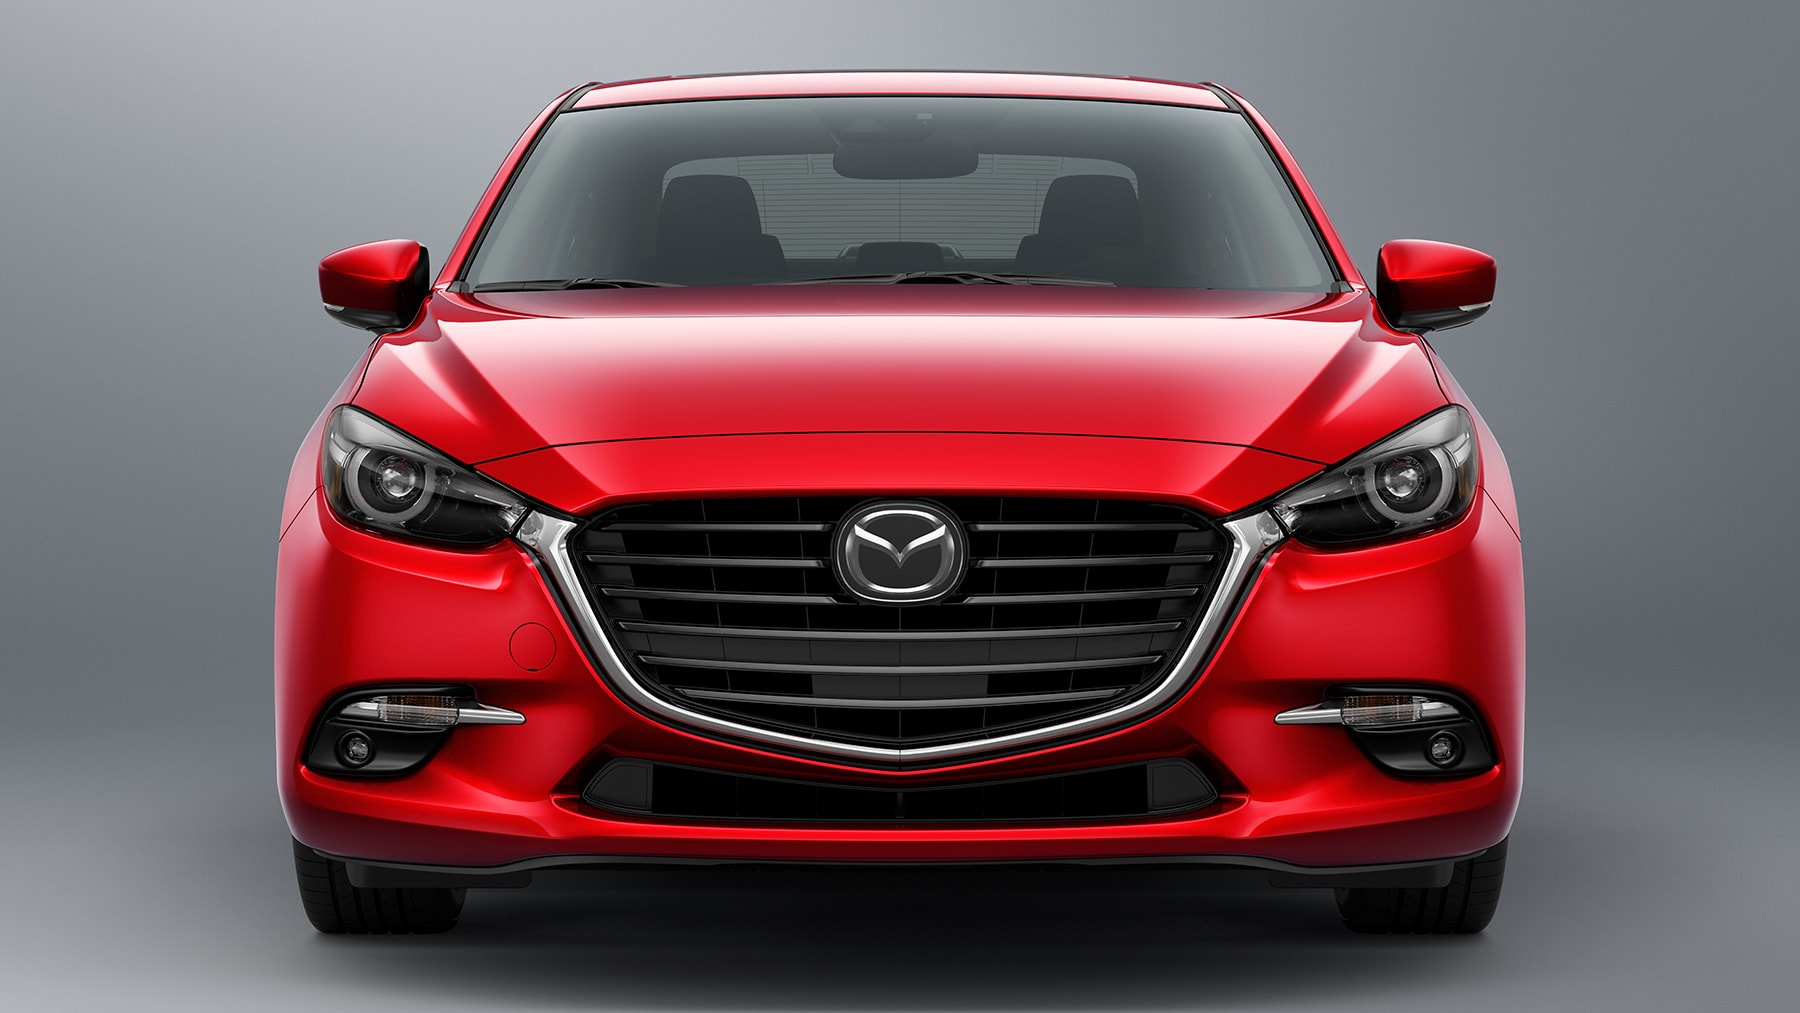 2018 Mazda3 for Sale near Fair Oaks, CA